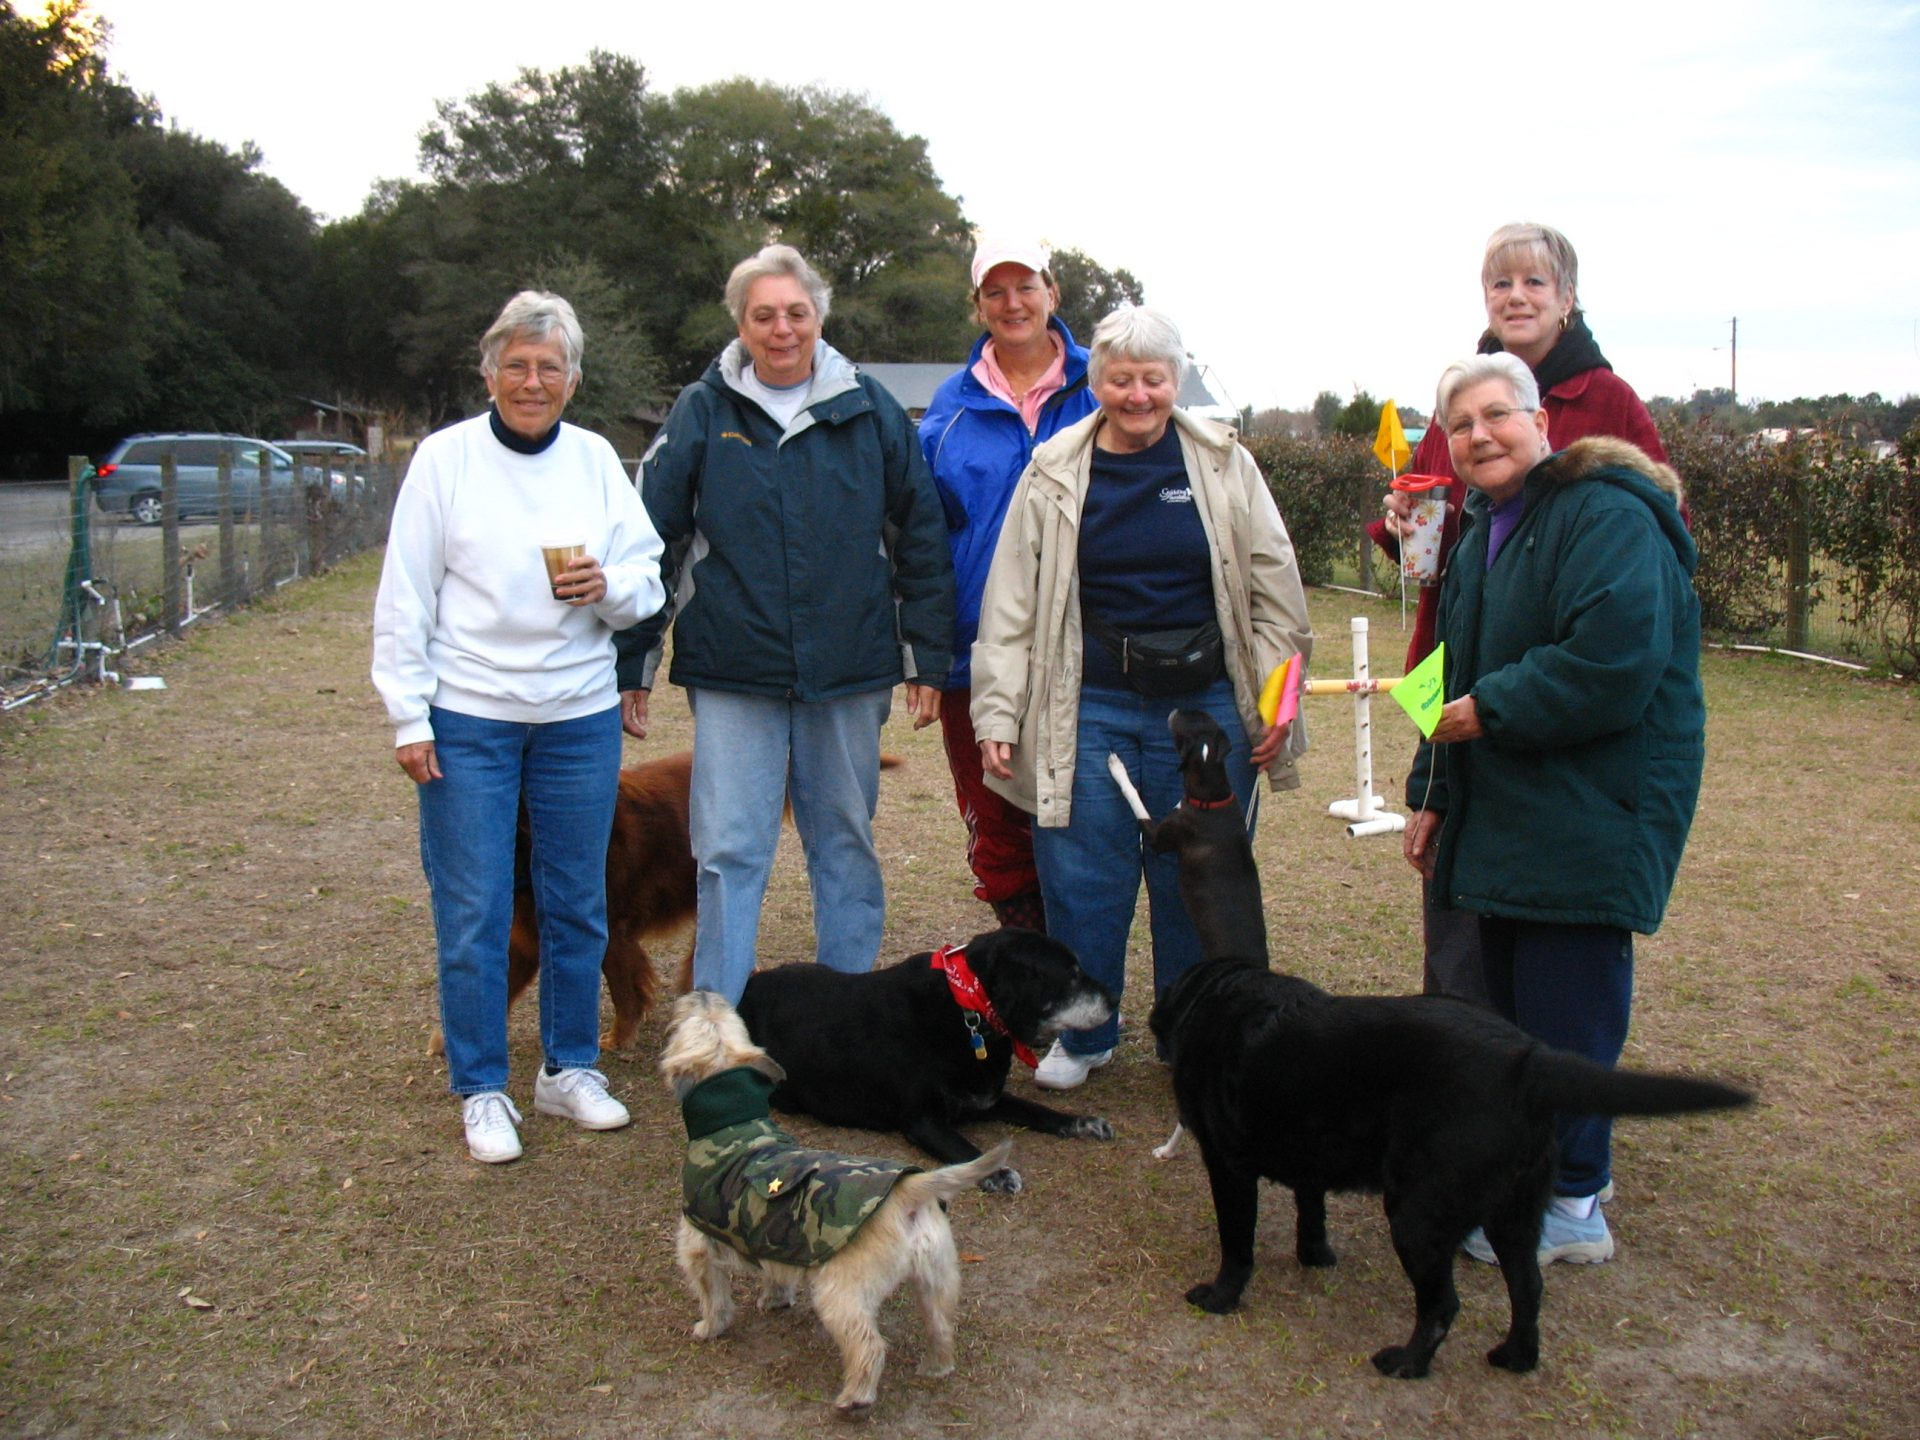 Morning gathering at Doggie Do Run Run with friends. Around 2006